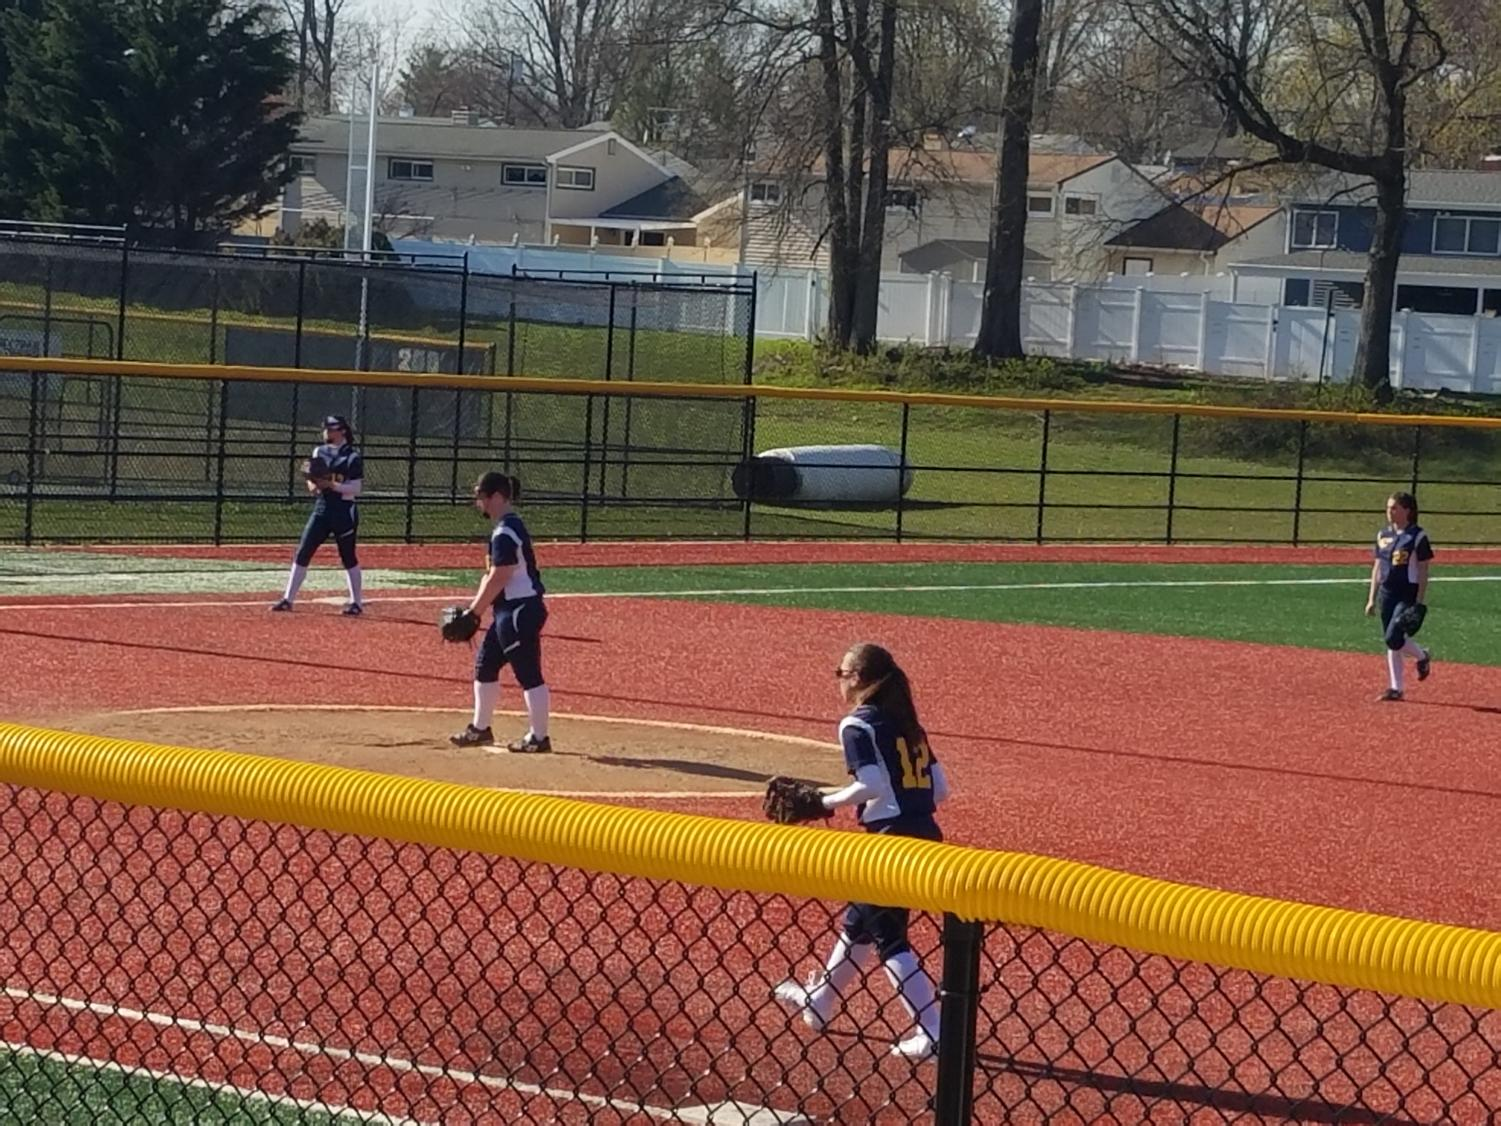 Ready to play, the Colonia Softball team prepares for the ball to come their way against Perth Amboy.